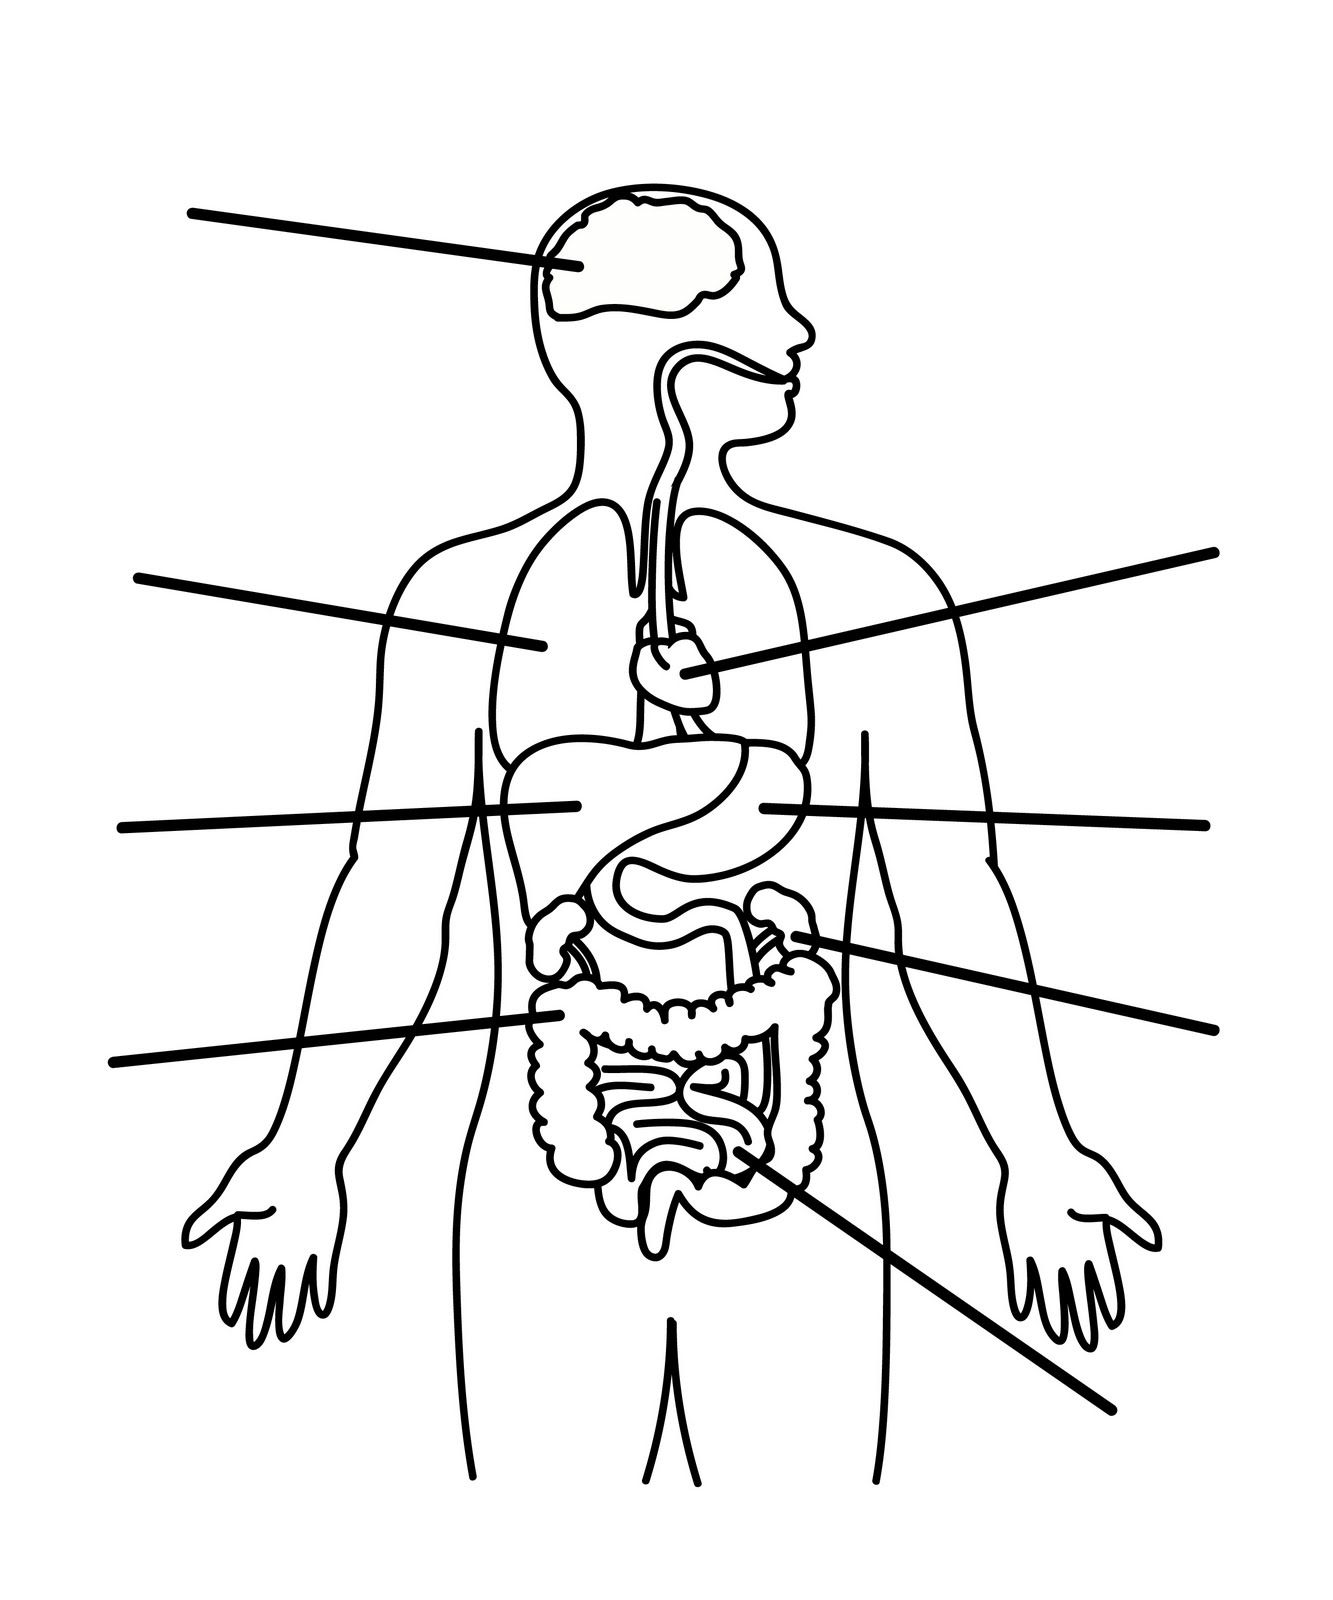 Human Body Anatomy Outline Printable for Kids | Science Class ...